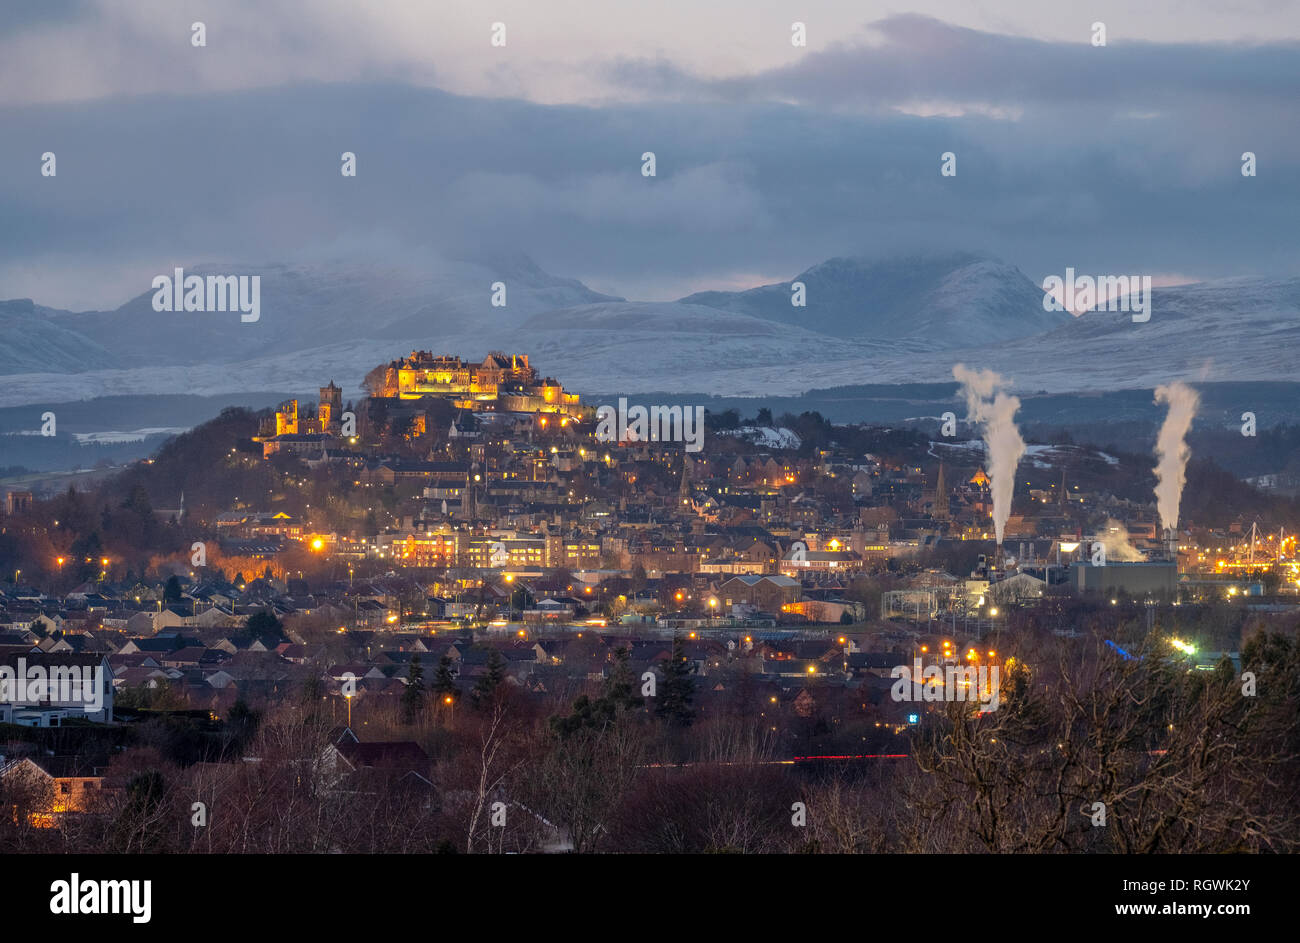 Stirling Castle and town of Stirling at dusk with the snow covered mountain (Stuc a Chroin ) in distance - Stock Image